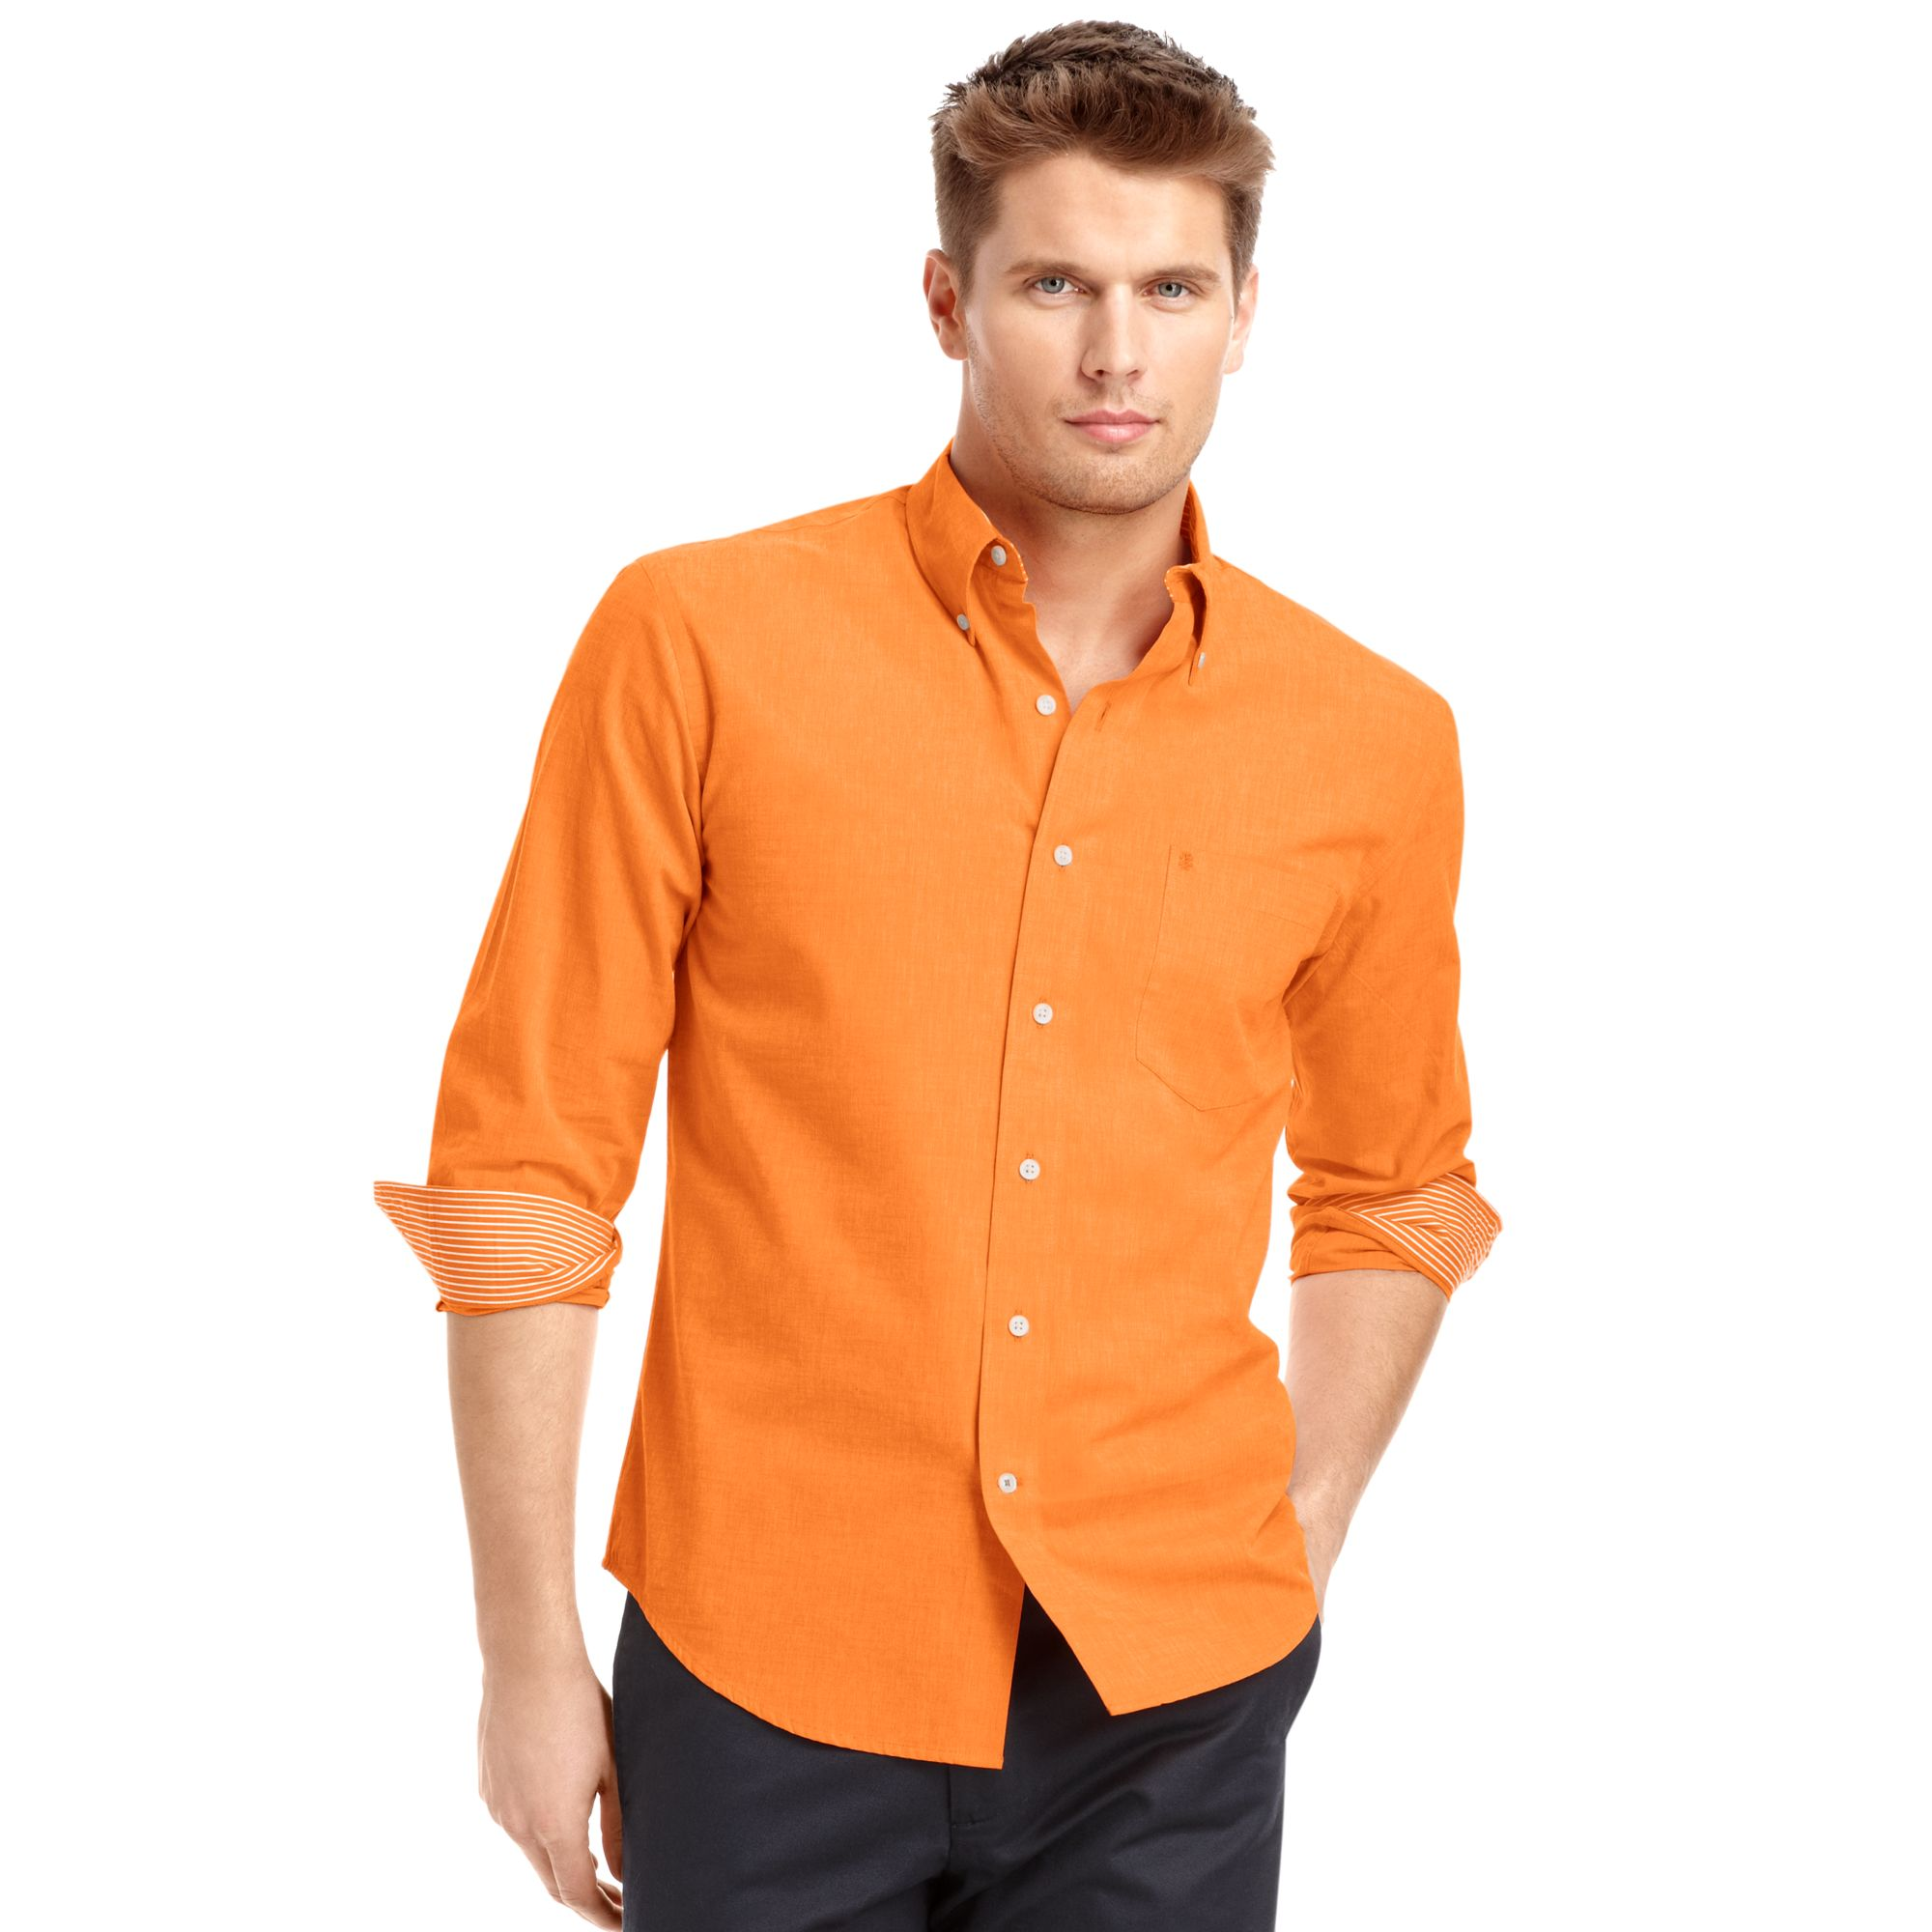 Izod izod big and tall shirt longsleeve essential solid for Big and tall long sleeve shirts